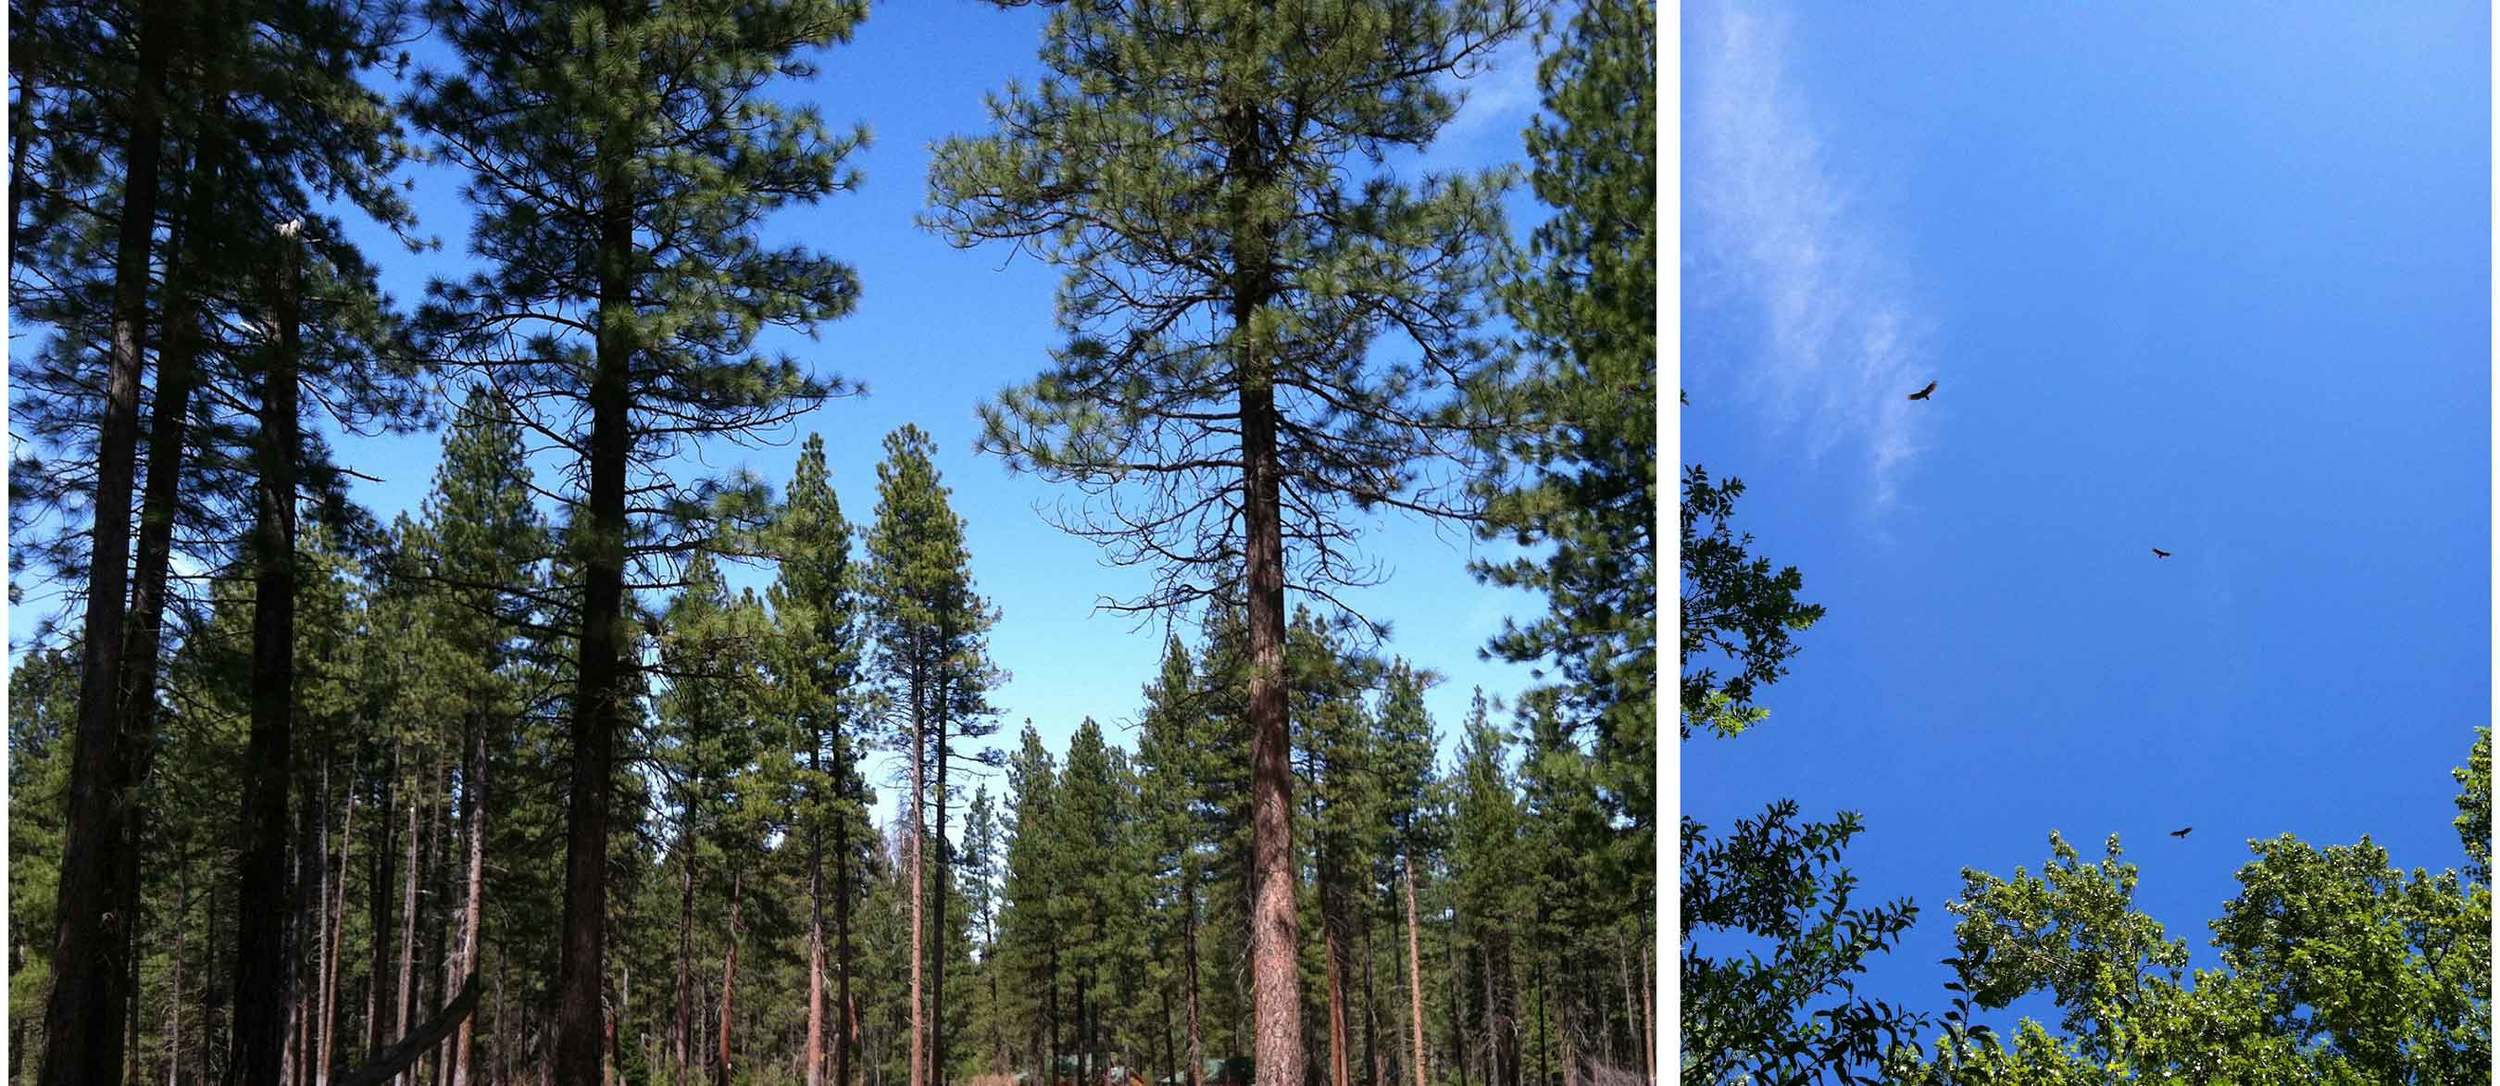 The woods of Central Oregon, Metolius River, hawks overhead, Thread & Whisk